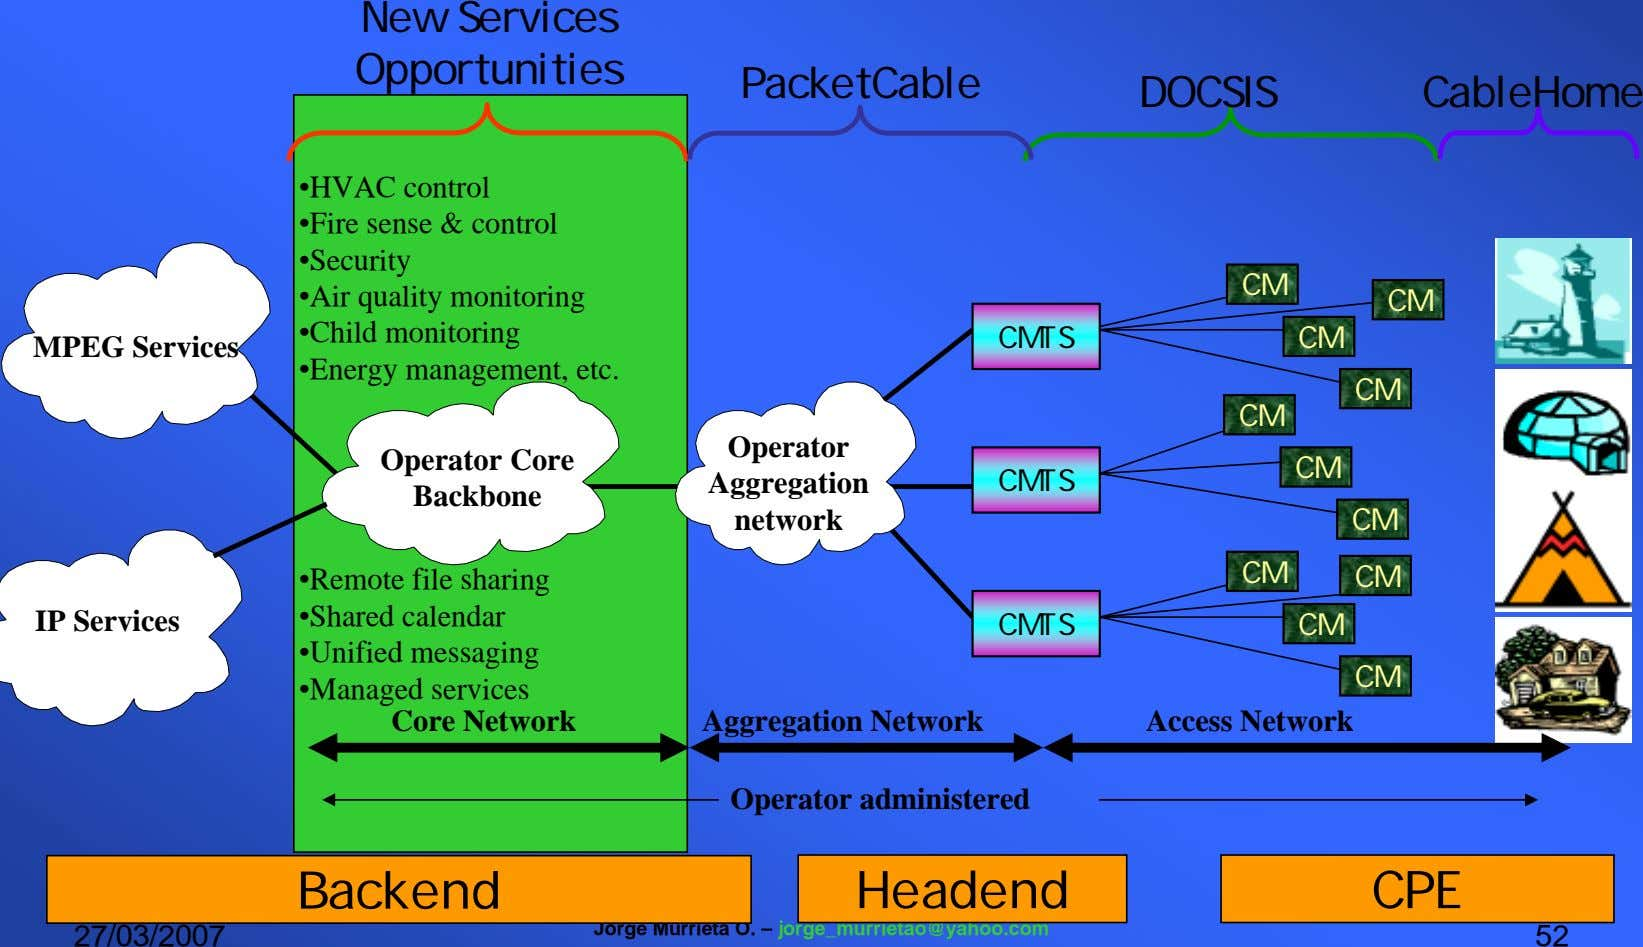 New Services Opportunities PacketCable DOCSIS CableHome MPEG Services •HVAC control •Fire sense & control